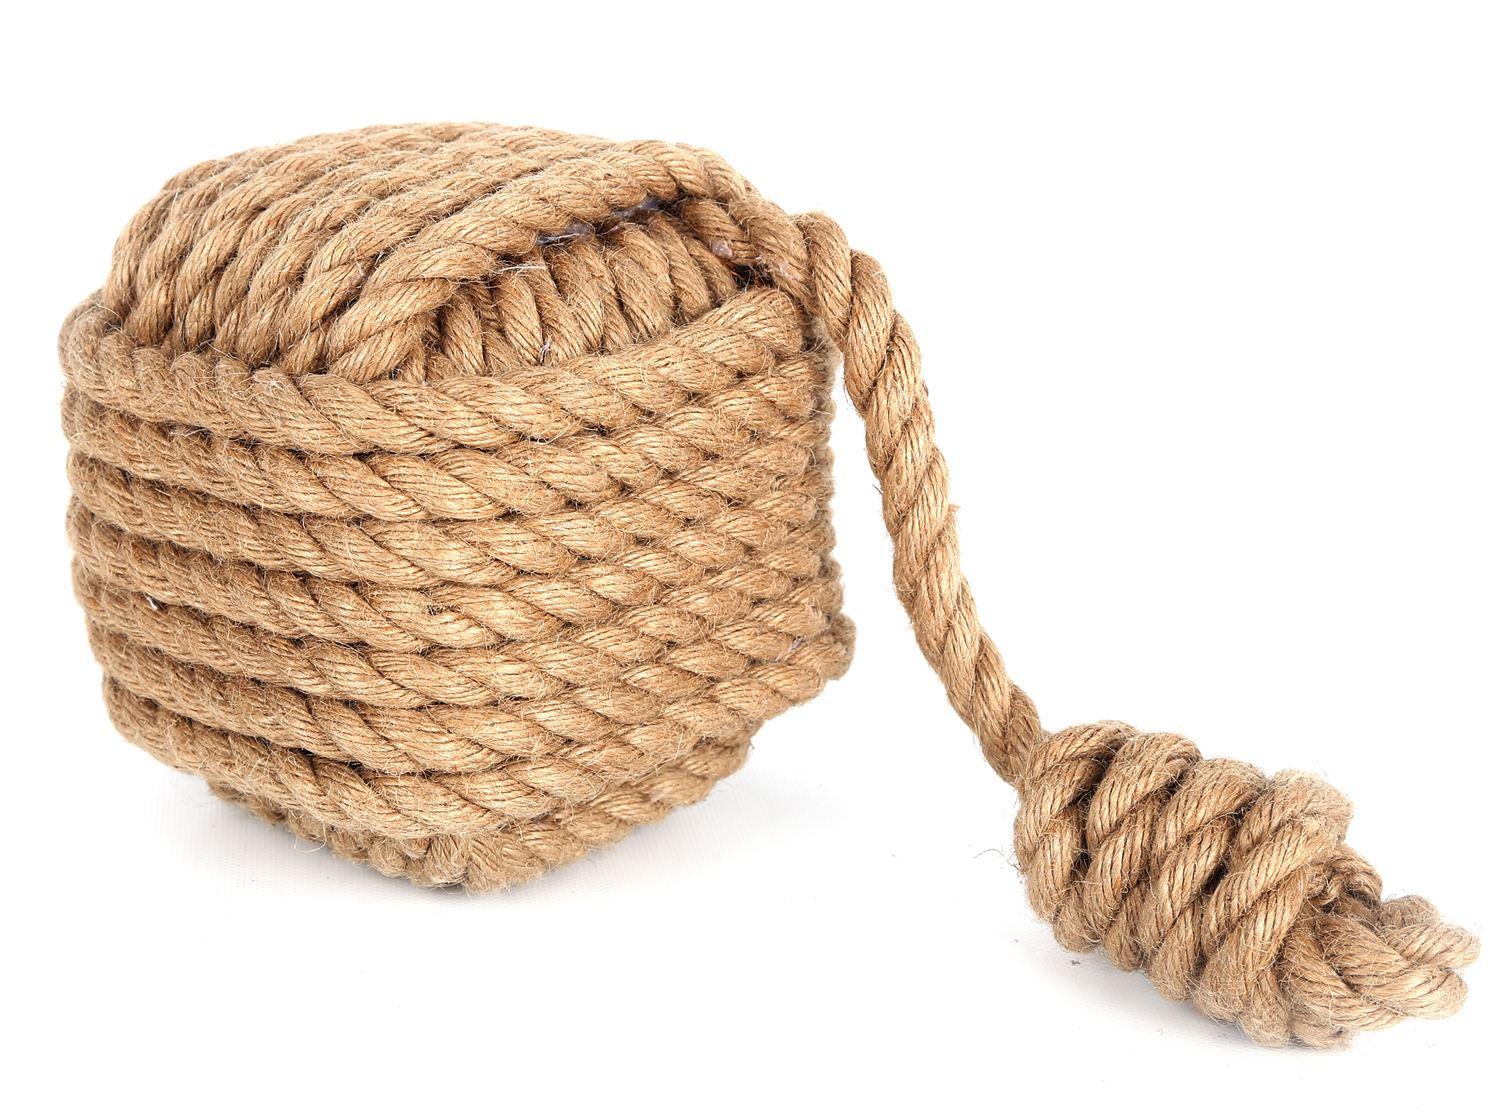 ... Fist Style Rope Ball Will Keep Doors Open To Allow A Breeze Through  Your Home, Or Prevent Doors Slamming. It Can Also Double Up As A Bookend Or  Even A ...